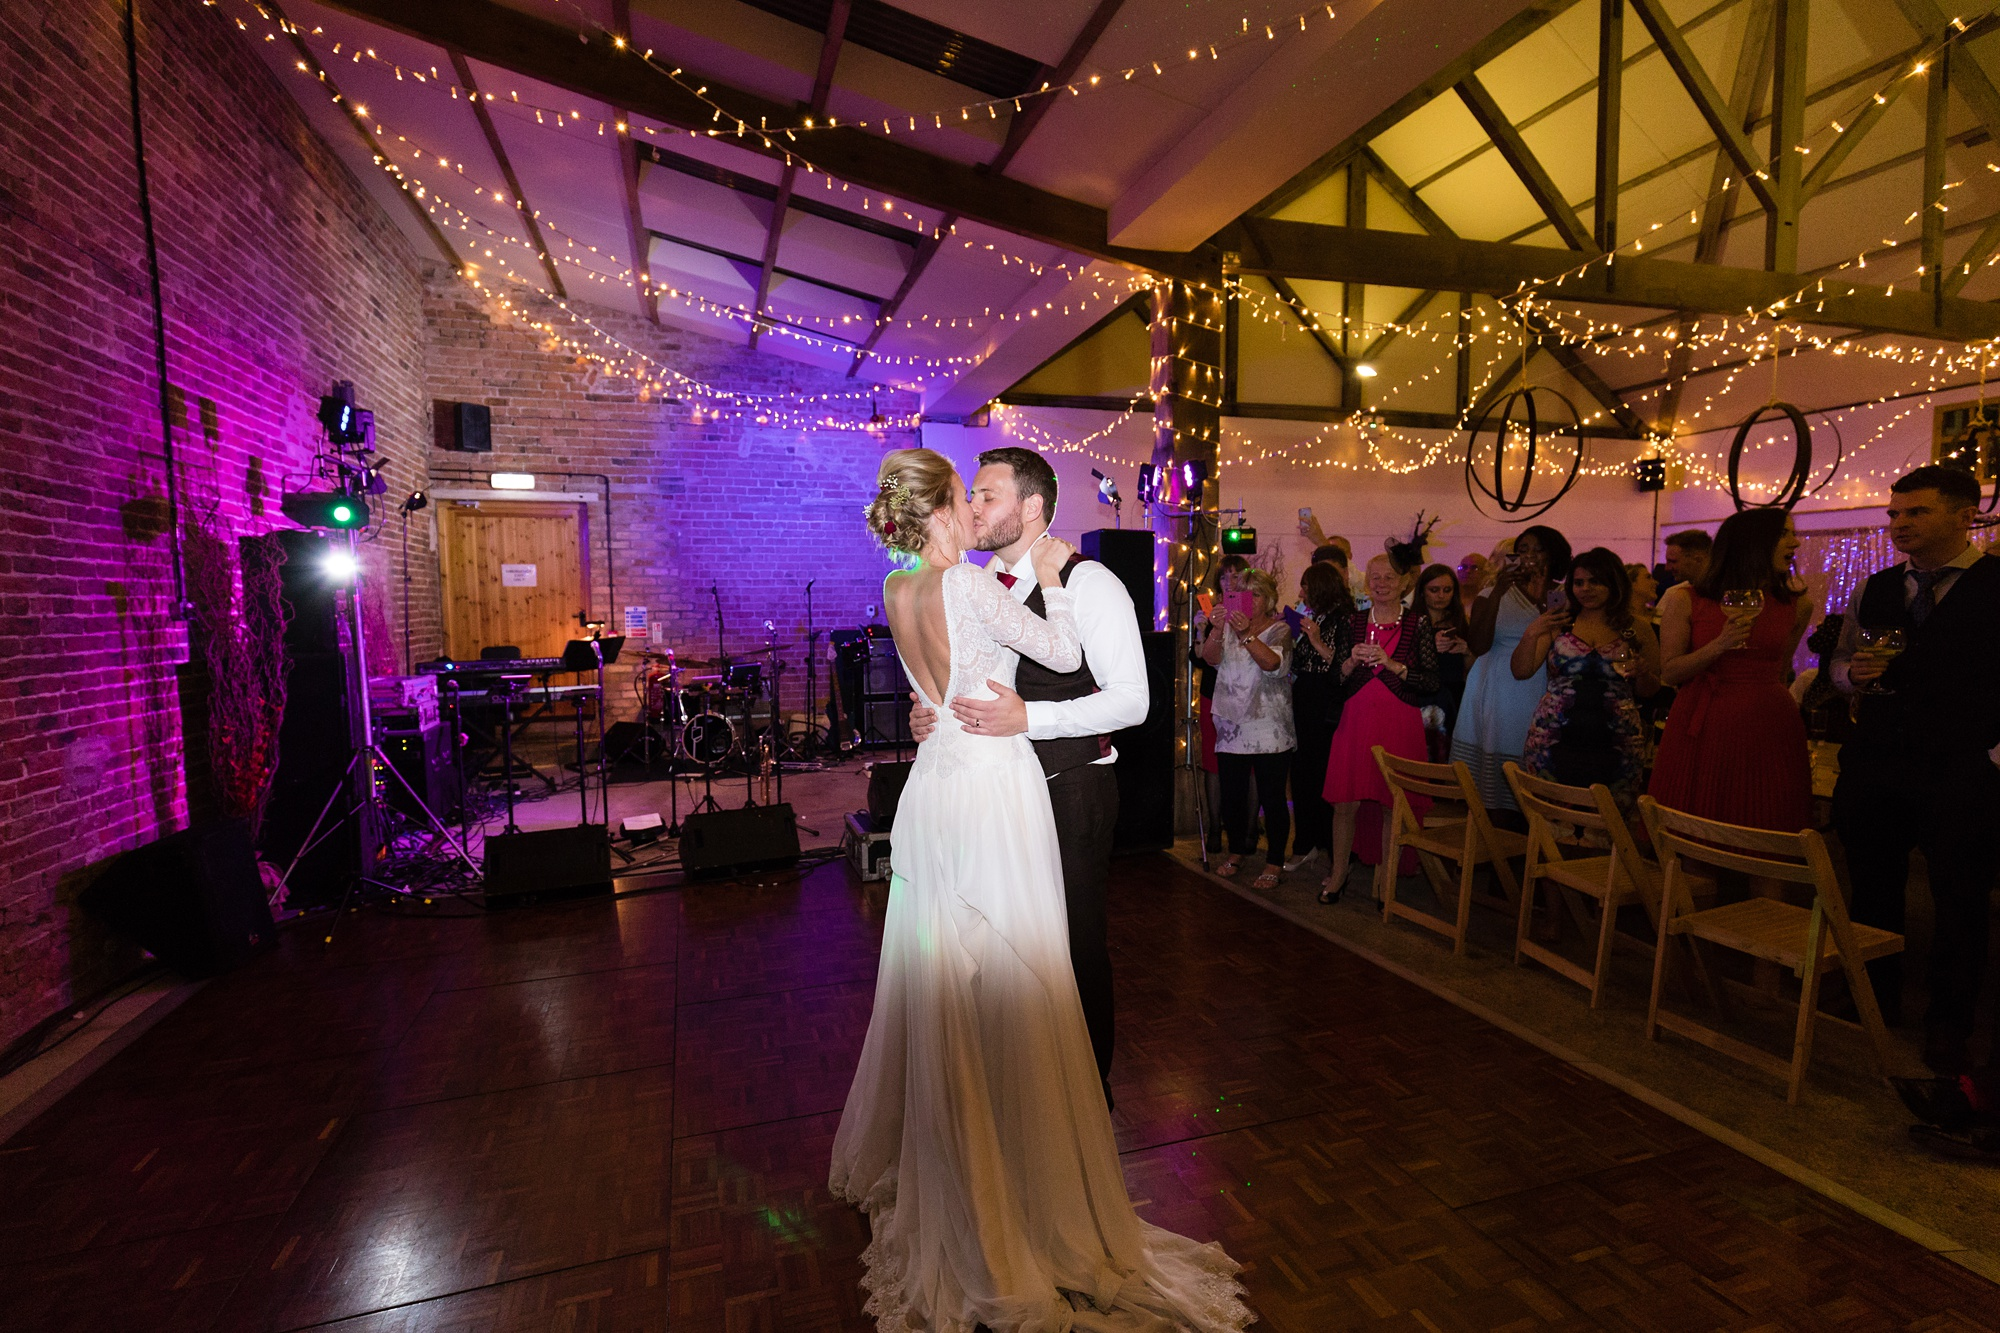 Yorkshire Wedding Photographers first dance under purple lights